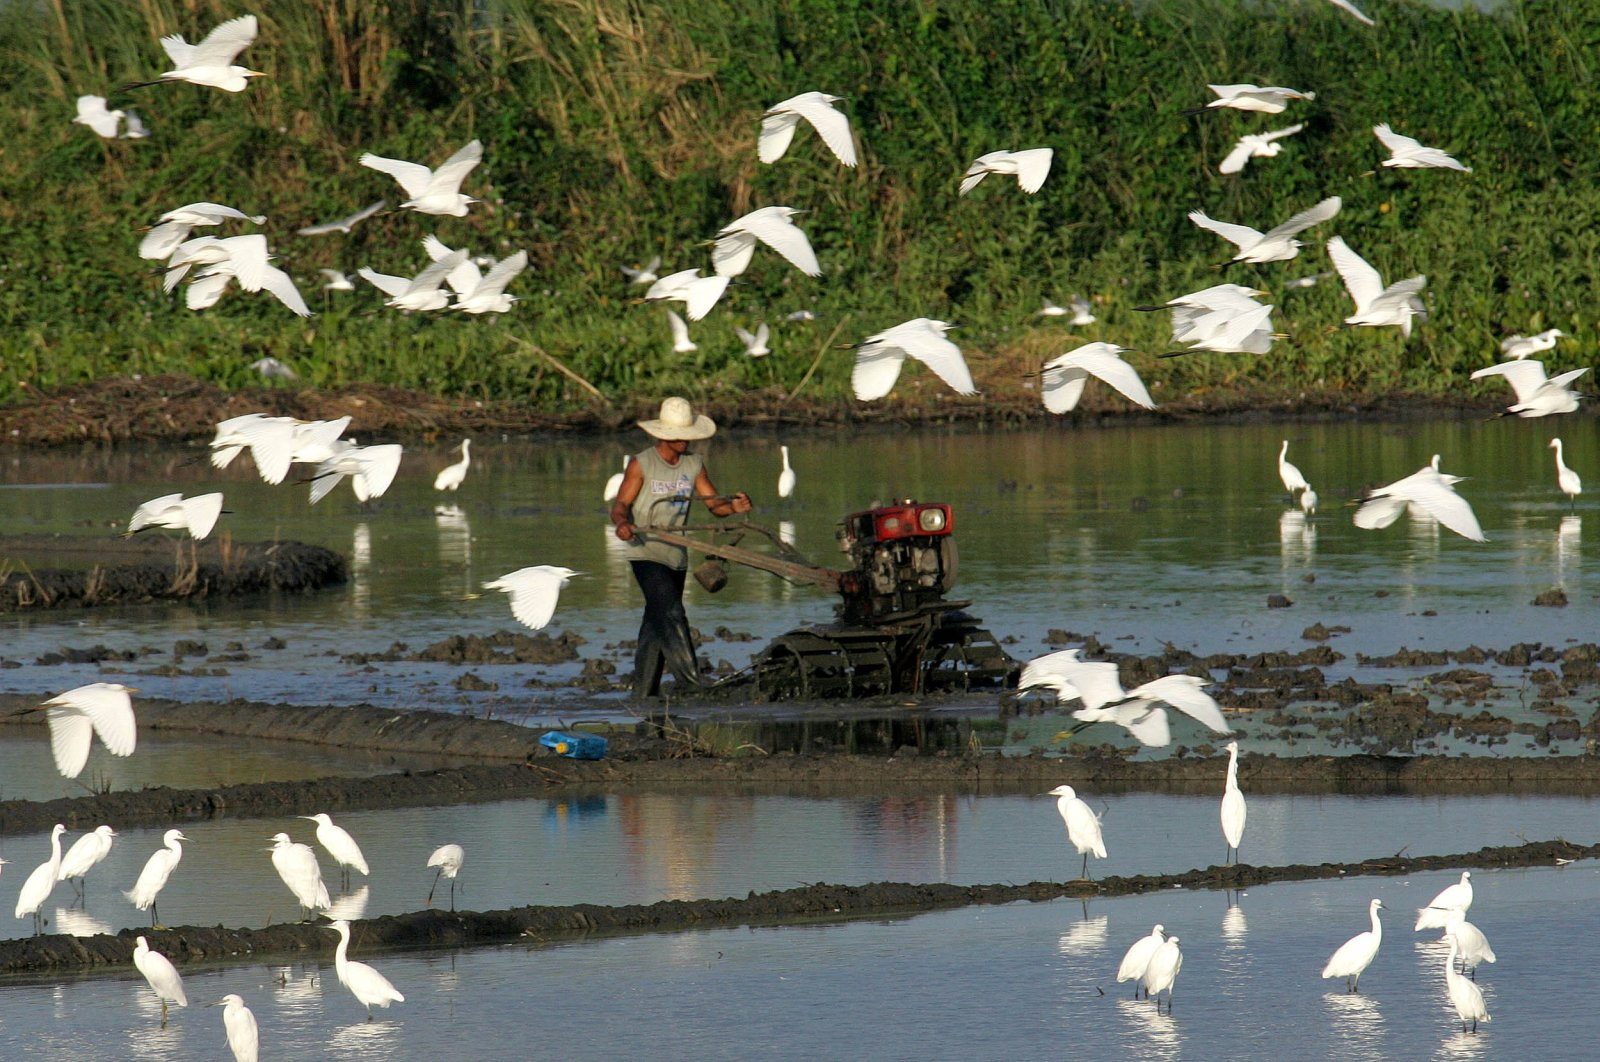 A Filipino farmer ploughs a rice field as a flock of migratory birds gather at one of the country's largest wetlands in Candaba town, in Pampanga province, north of Manila, Jan. 14, 2006. (Reuters Photo)